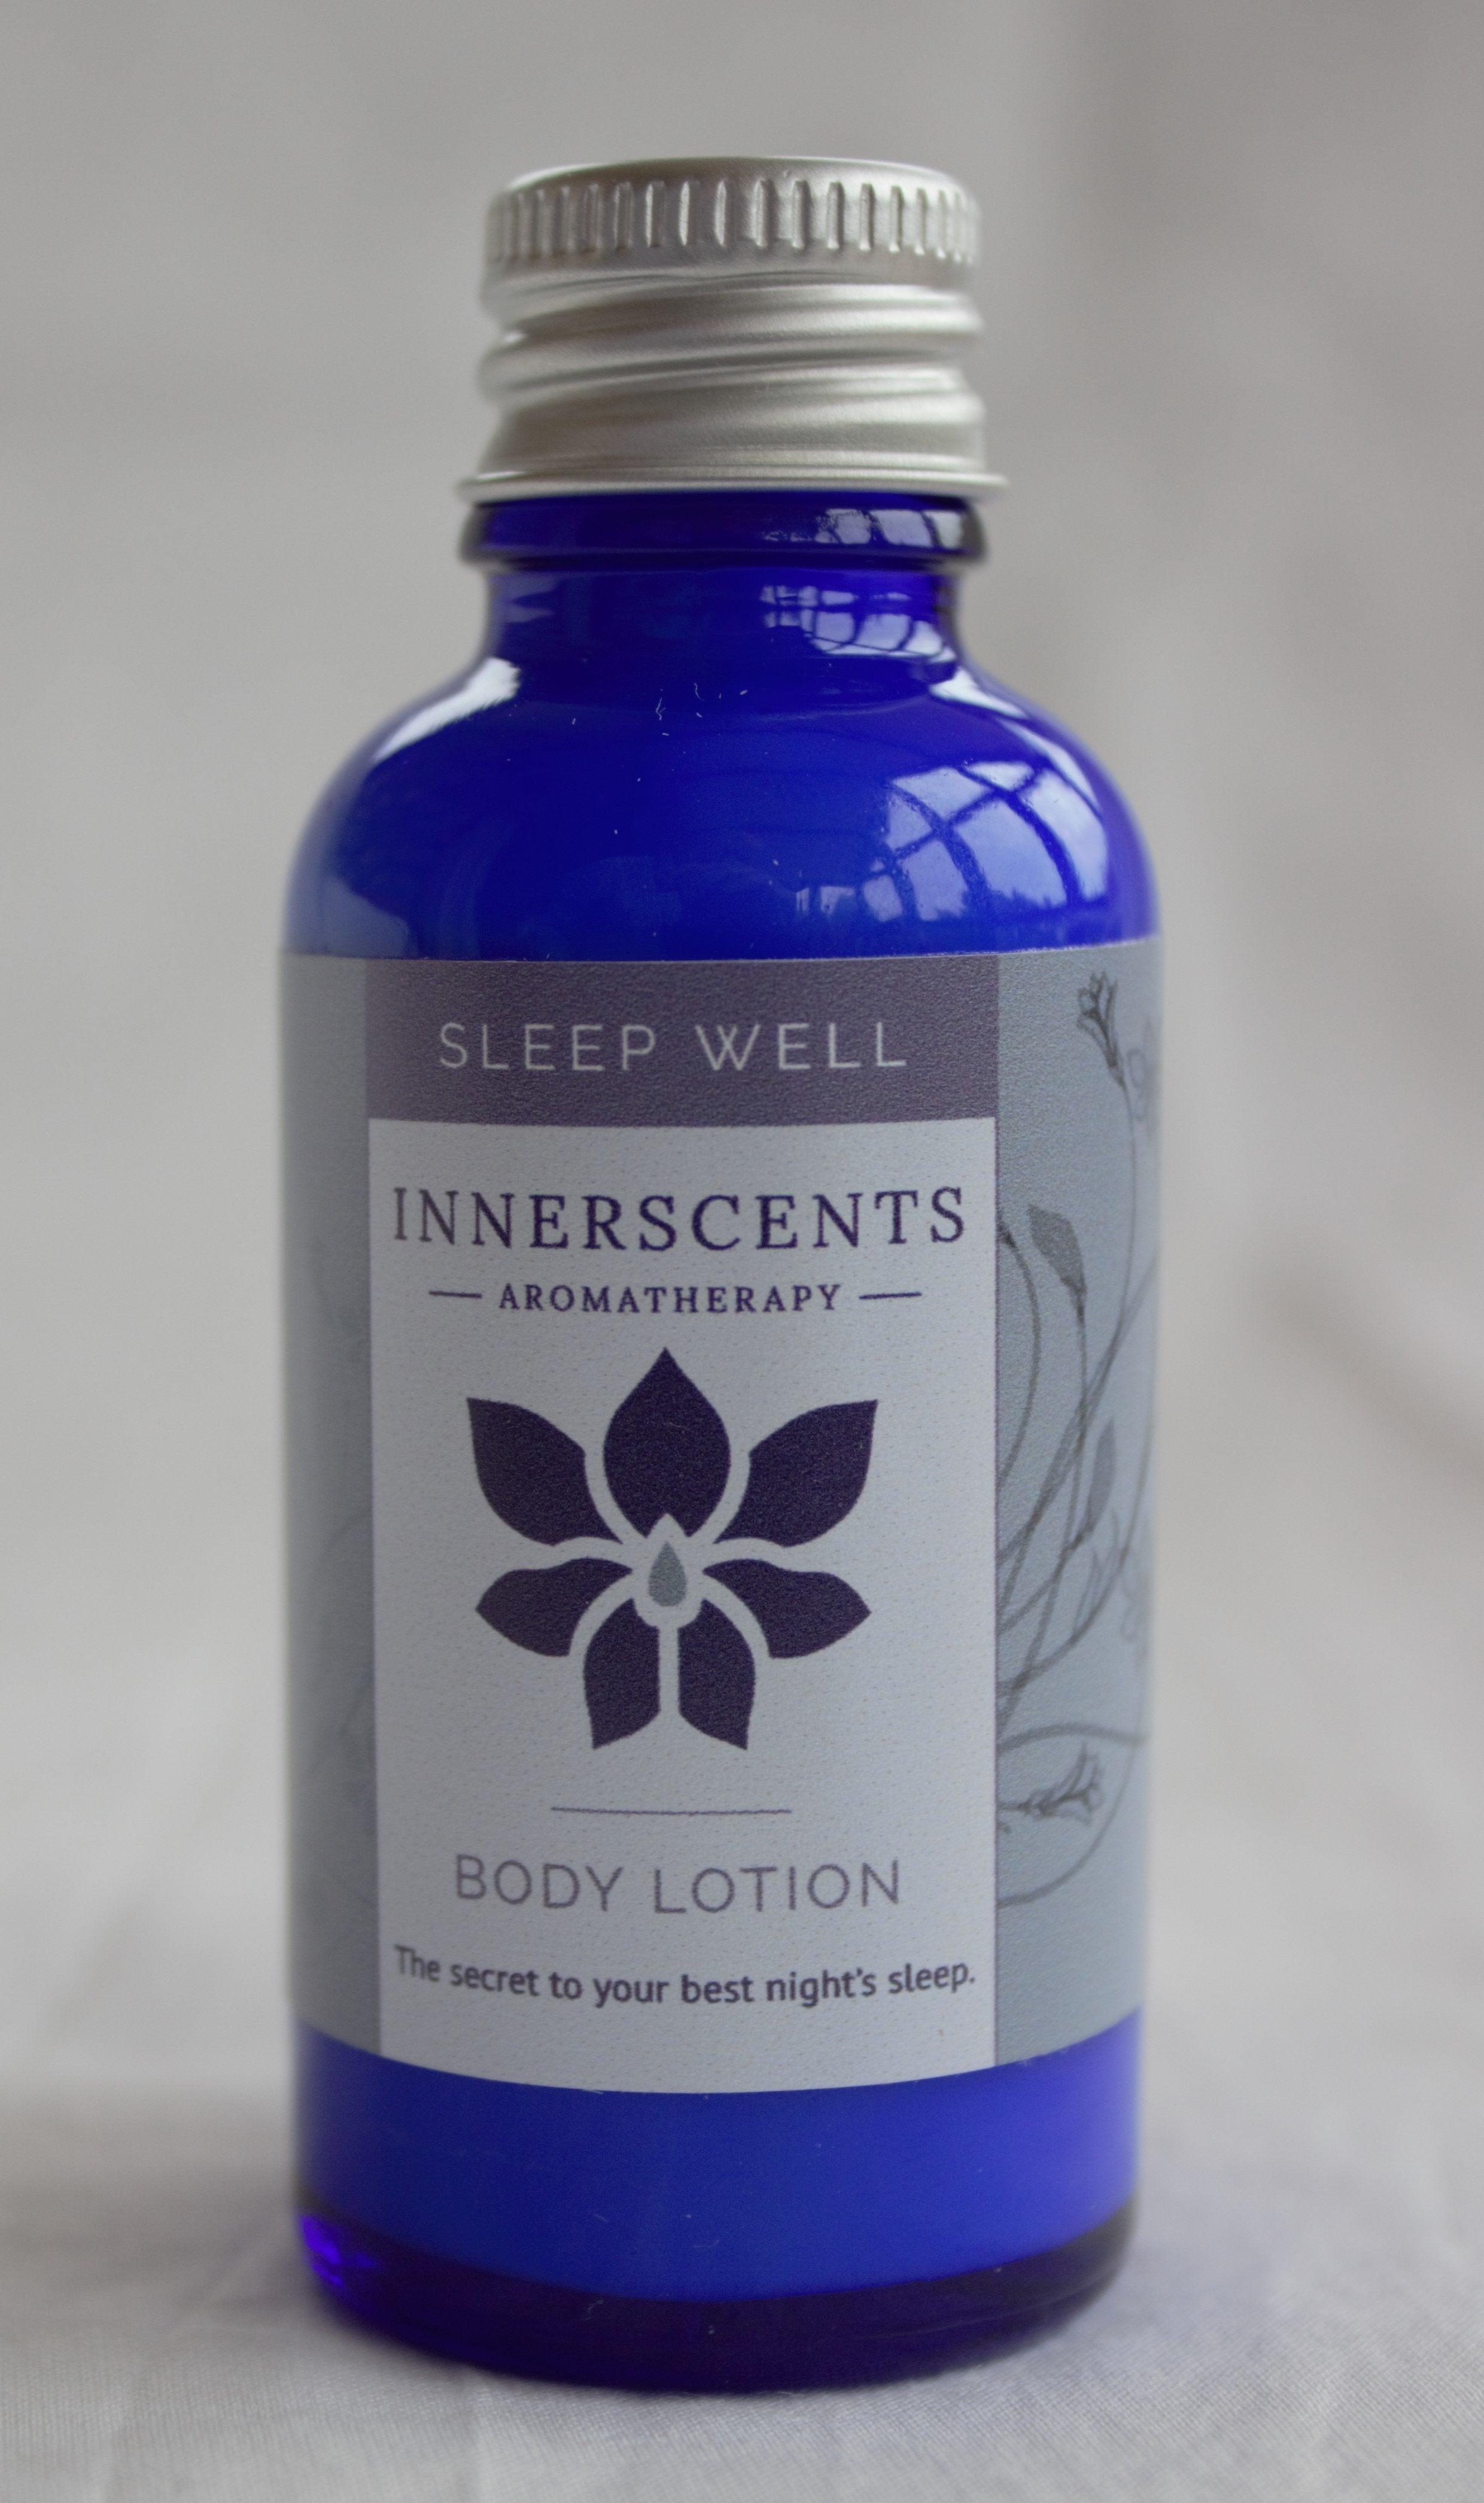 Sleep Well Aromatherapy Body Lotion 30ml - Innerscents Aromatherapy